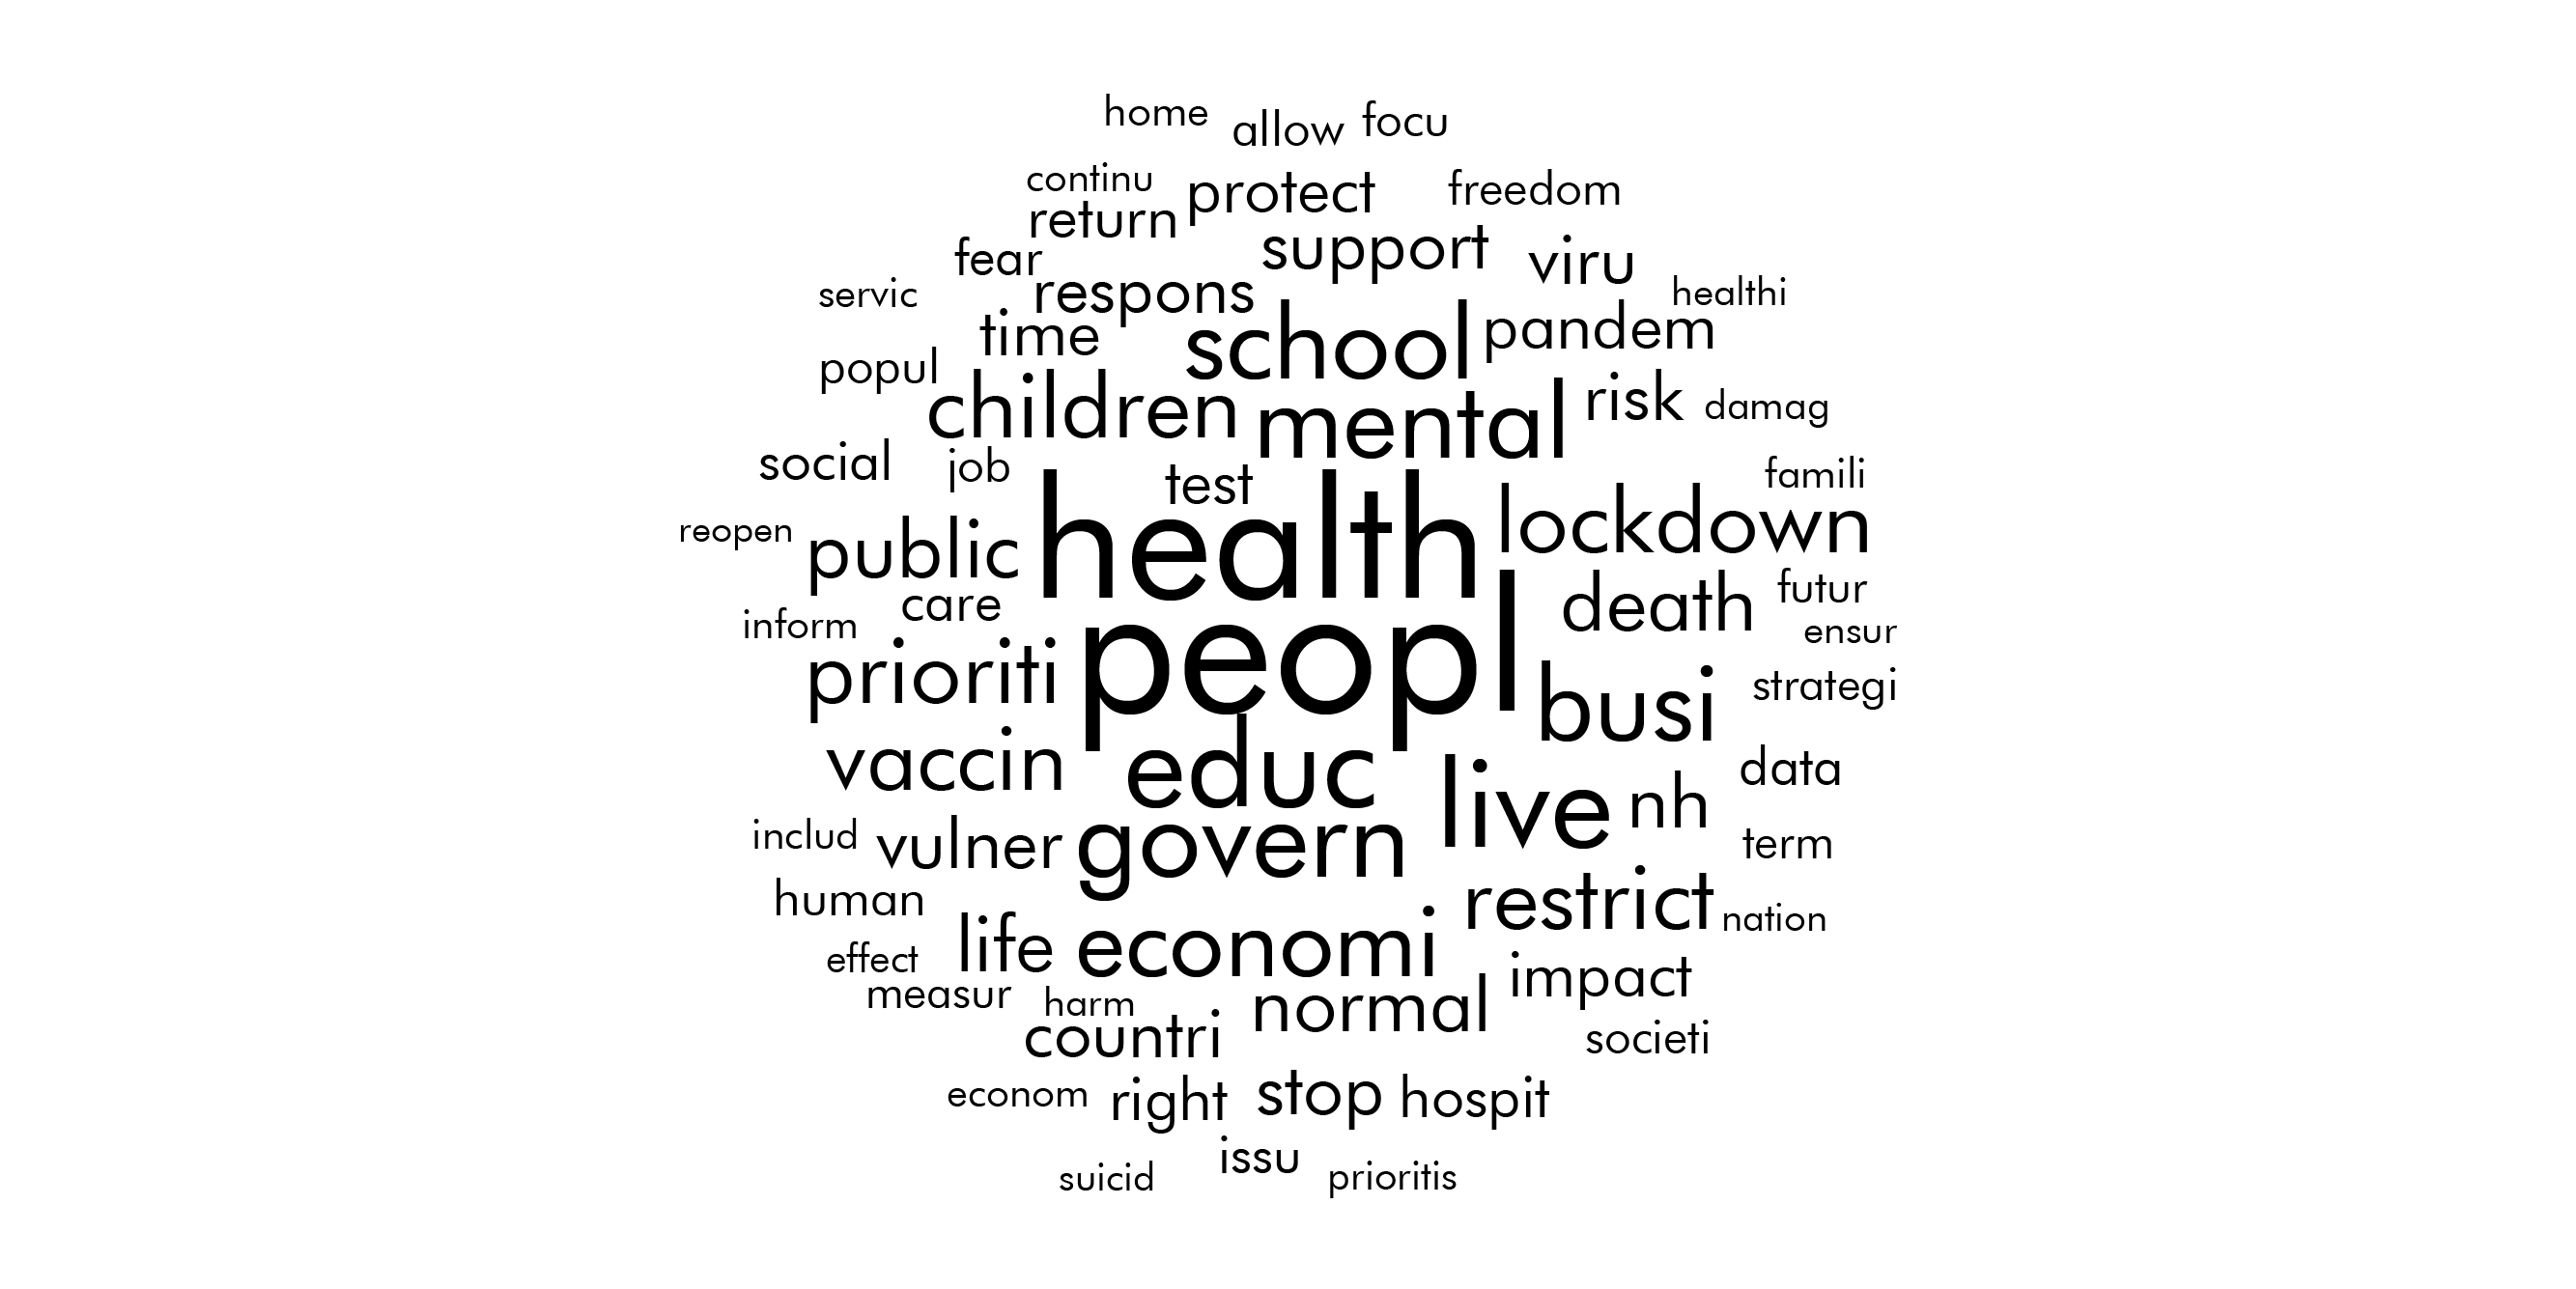 Word cloud highlighting issues raised in the written responses.